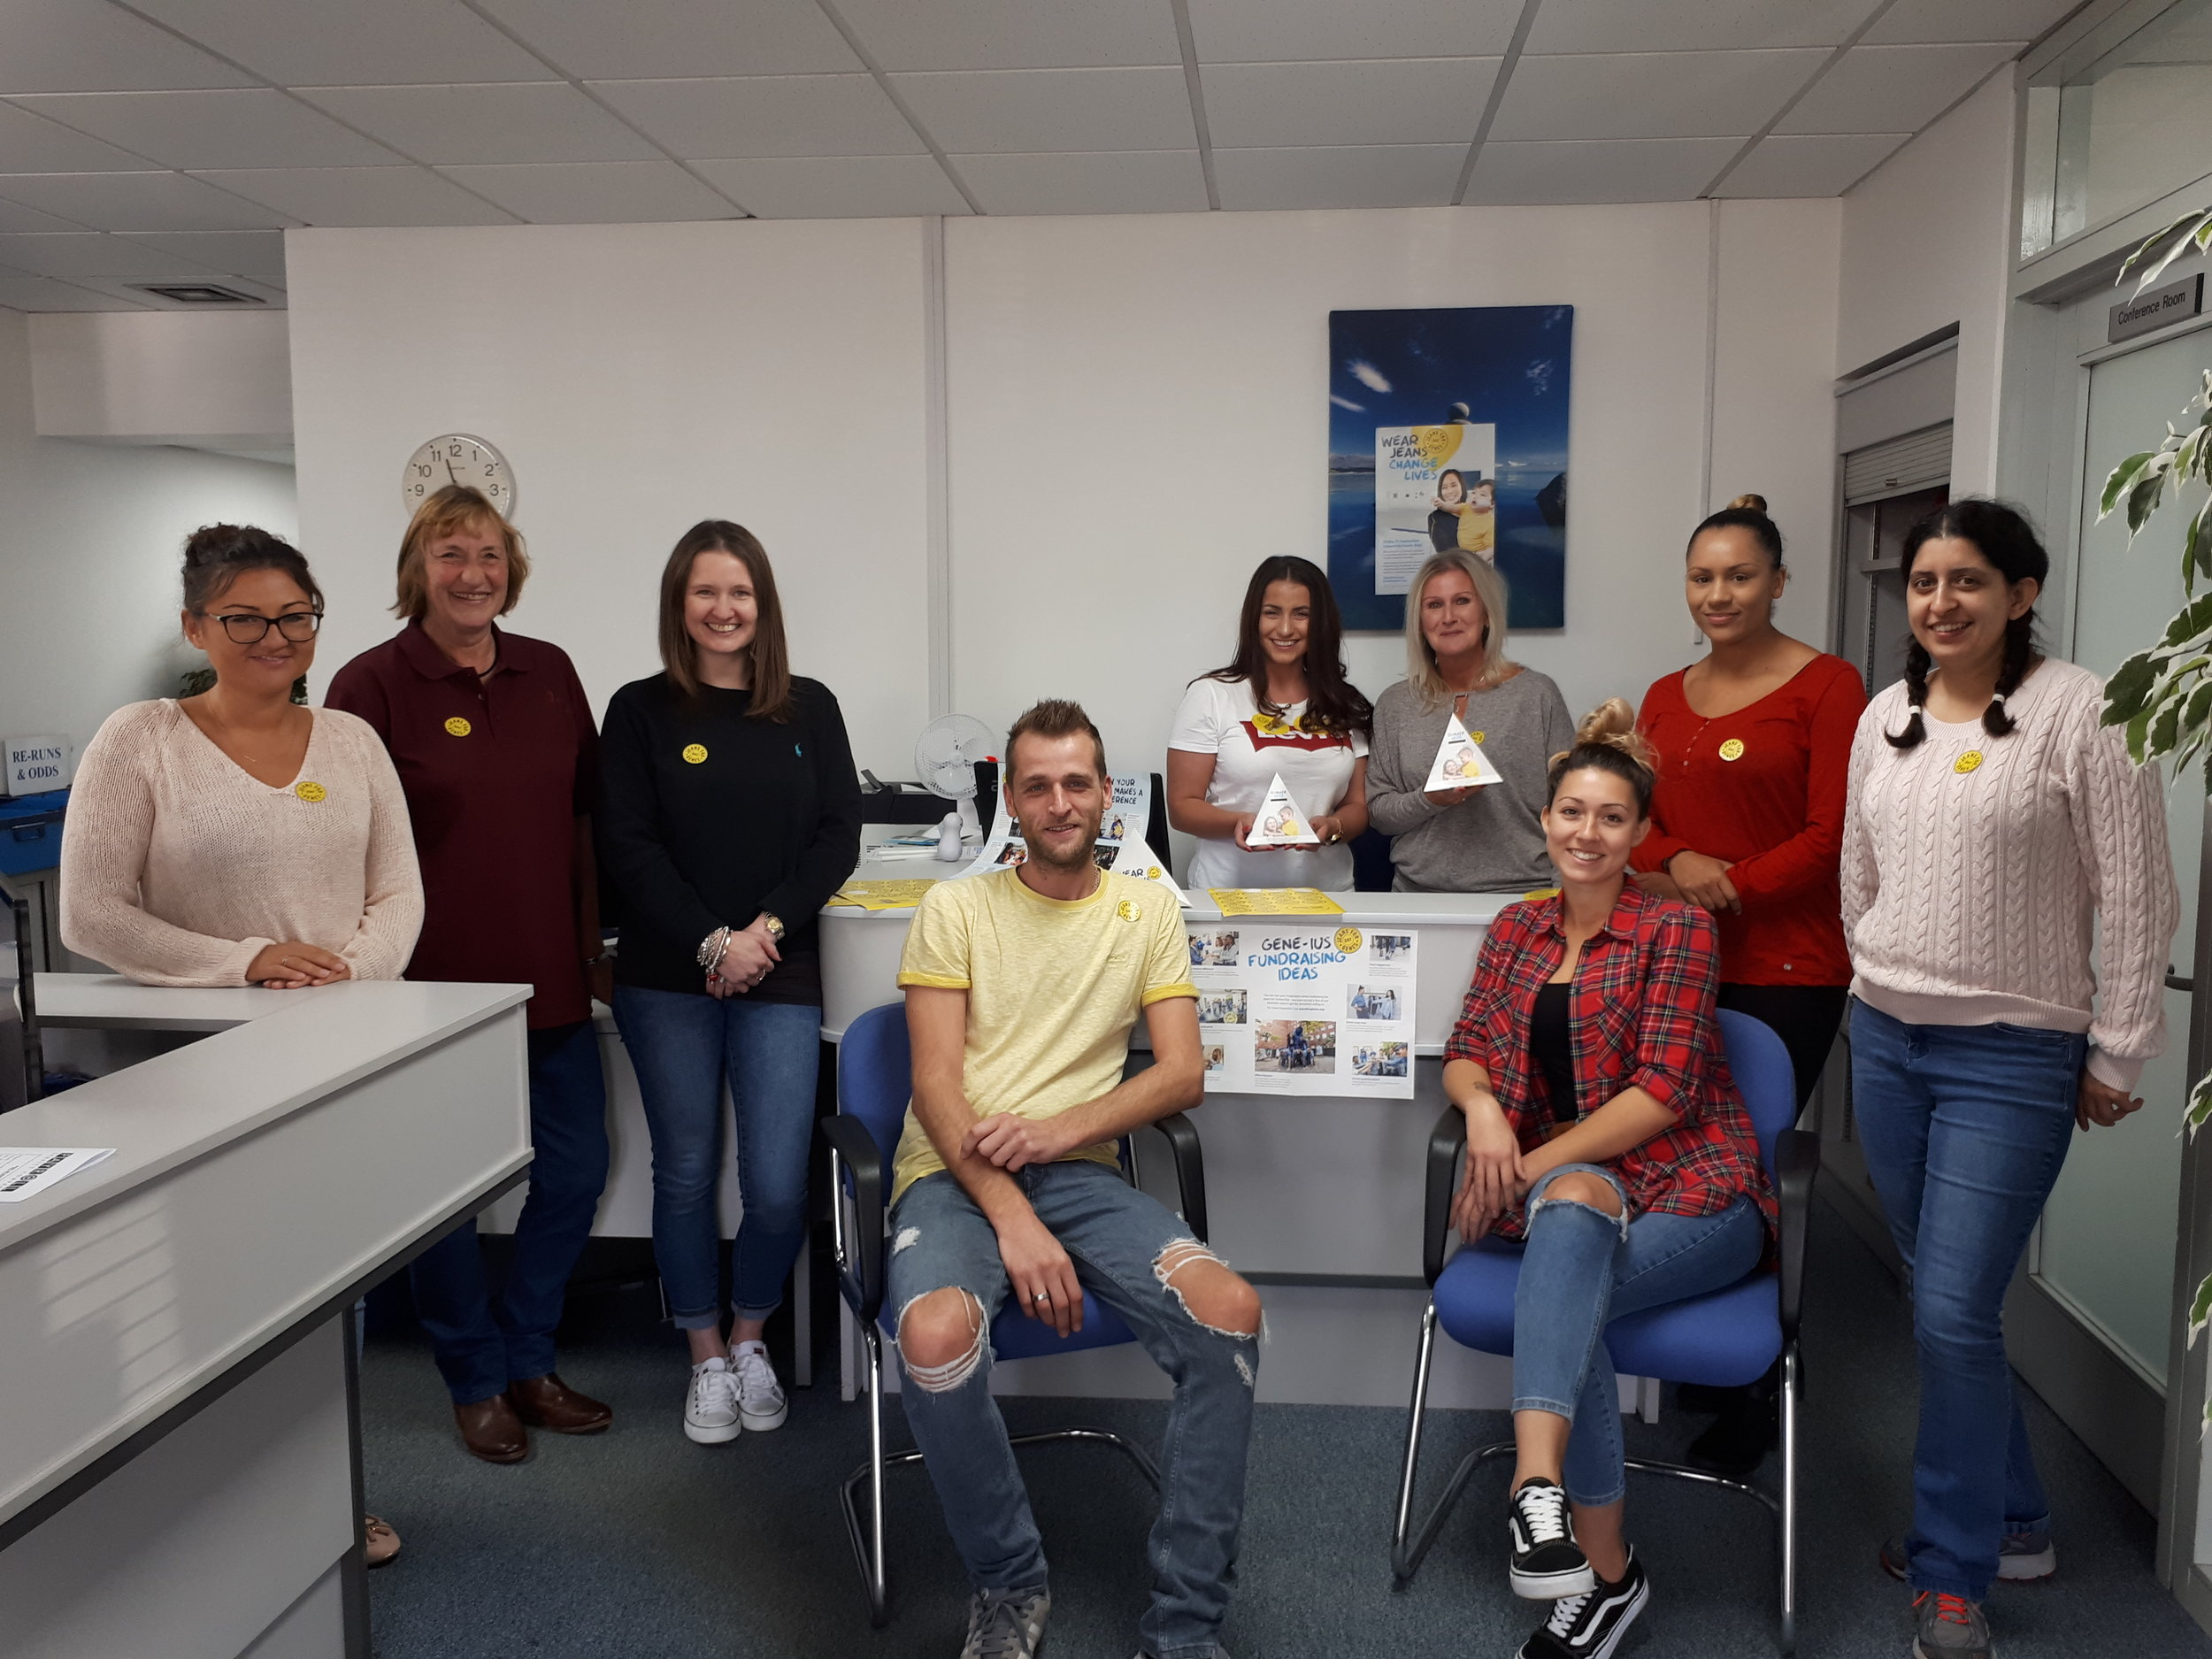 PSC Charity Day - Jeans for Genes day - 20th September 2018